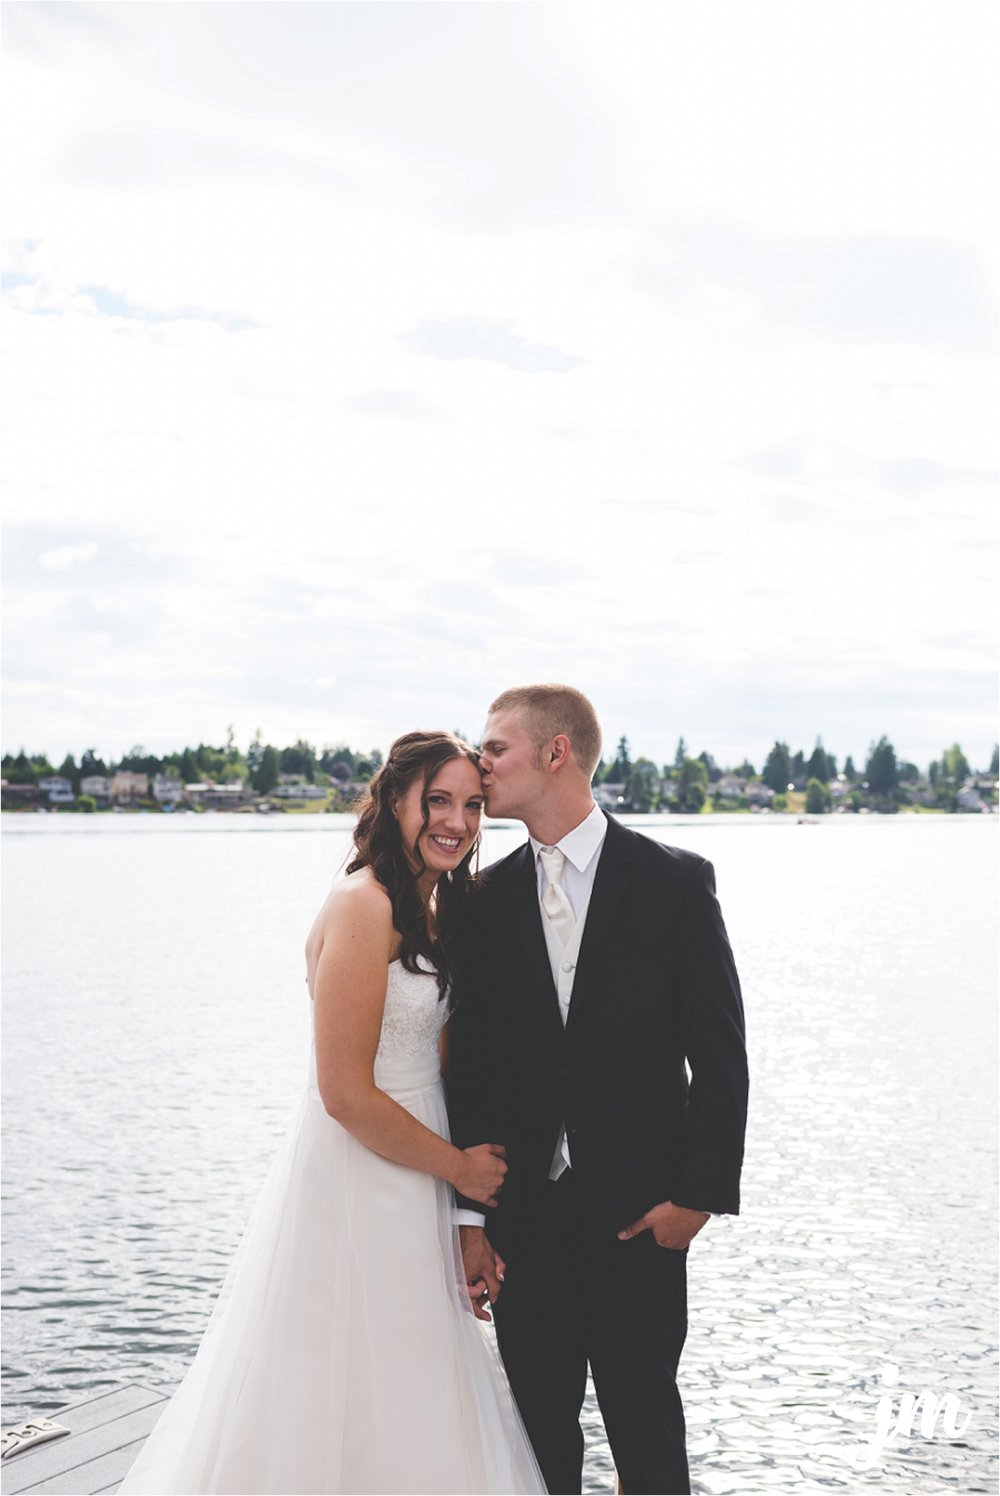 jannicka-mayte-intimate-backyard-lake-wedding-kent-wa-pacific-northwest-wedding-photographer_0018.jpg